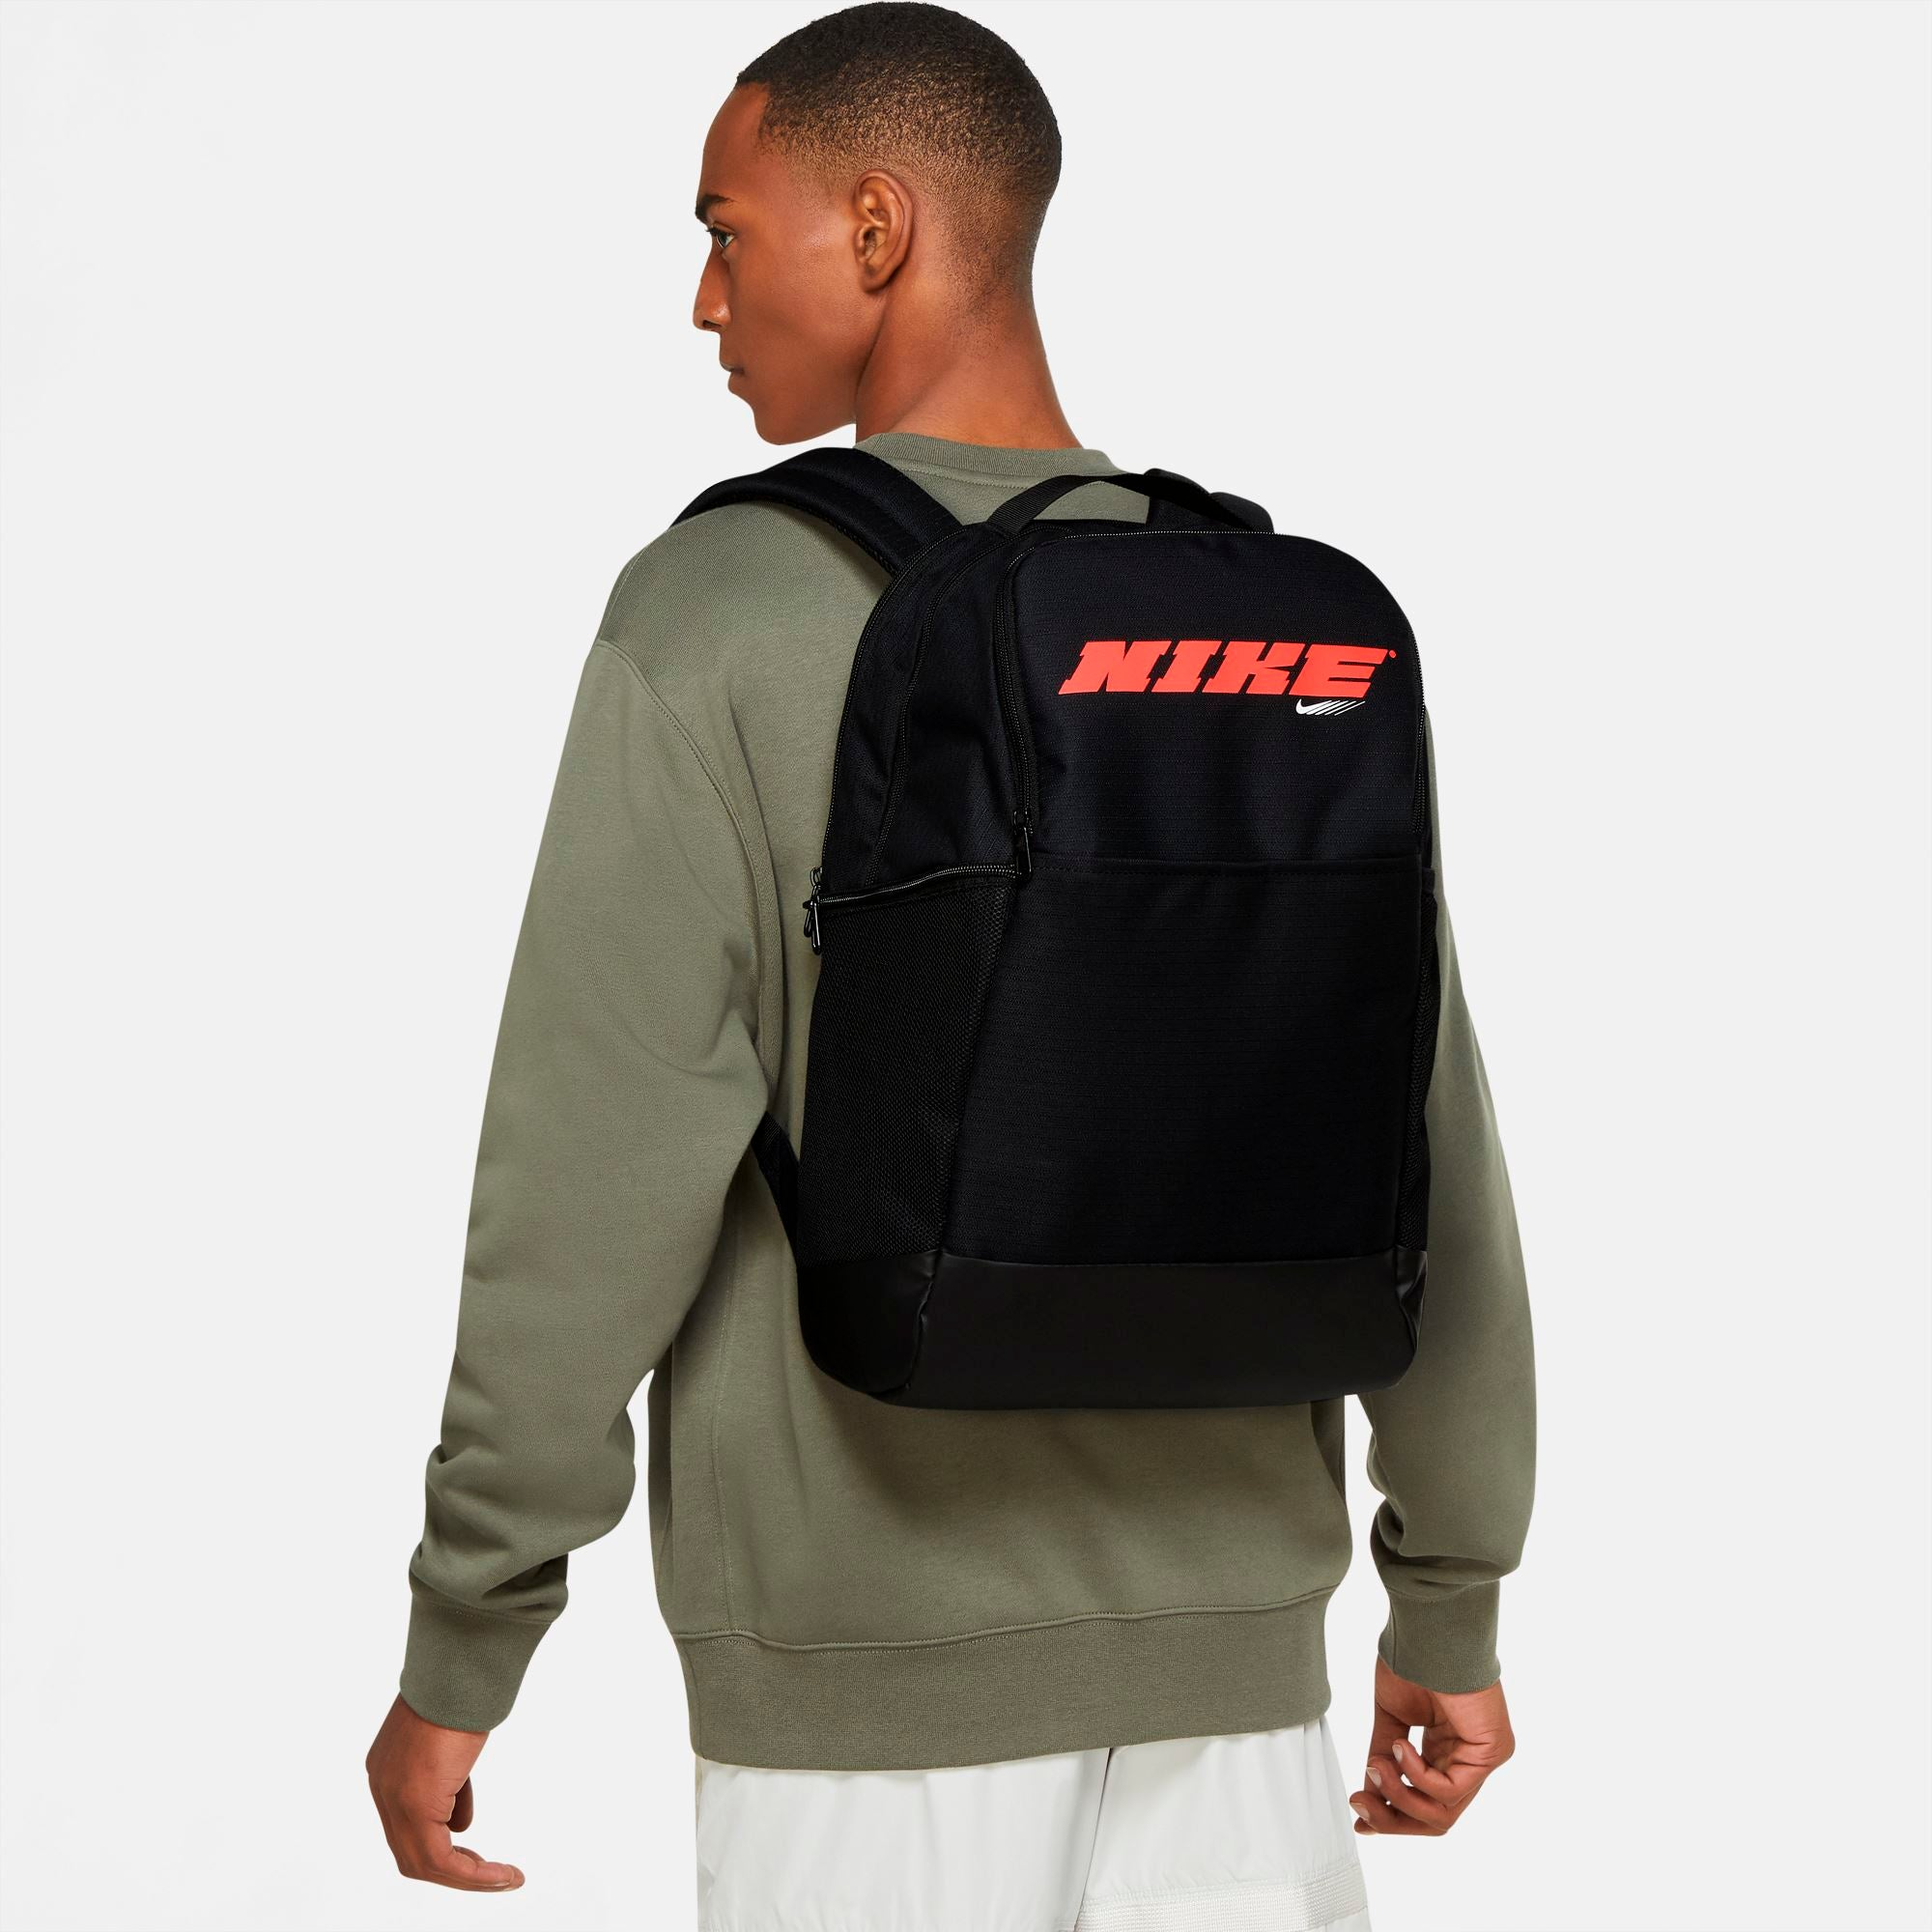 Nike Brasilia Training Backpack - Black/Bright Crimson SP-Accessories-Bags Nike